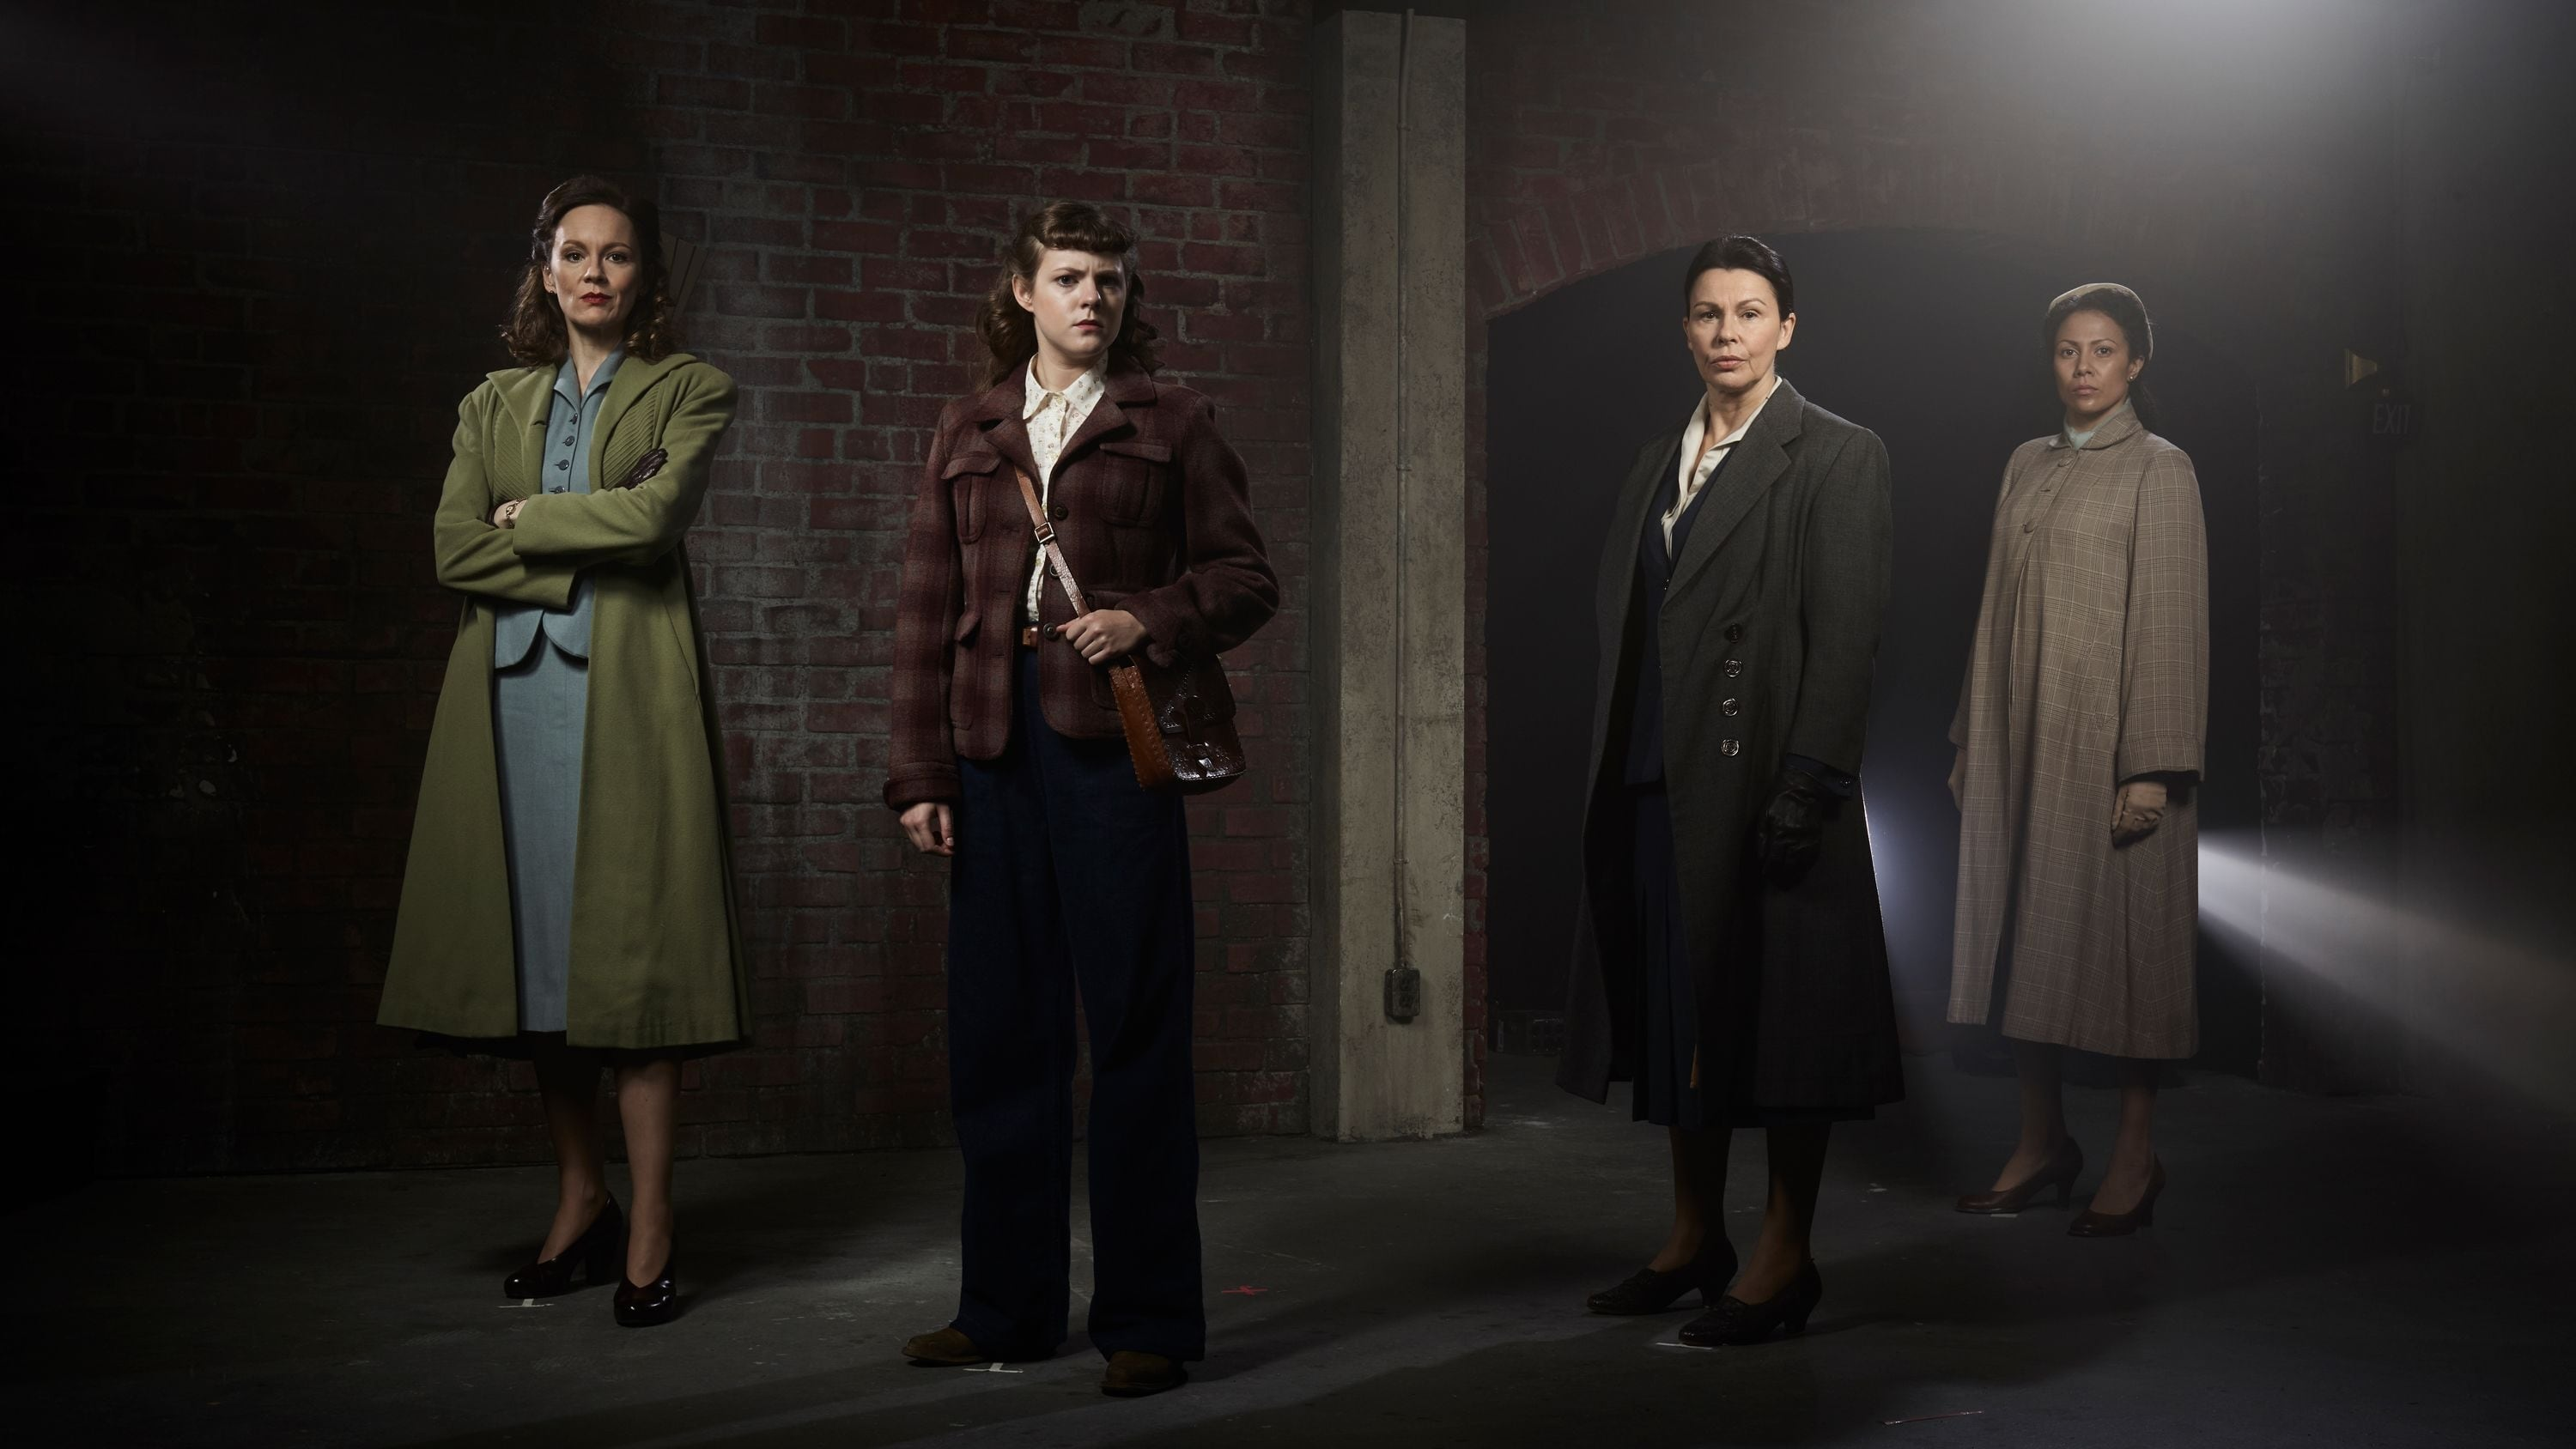 Download The Bletchley Circle: San Francisco film ...